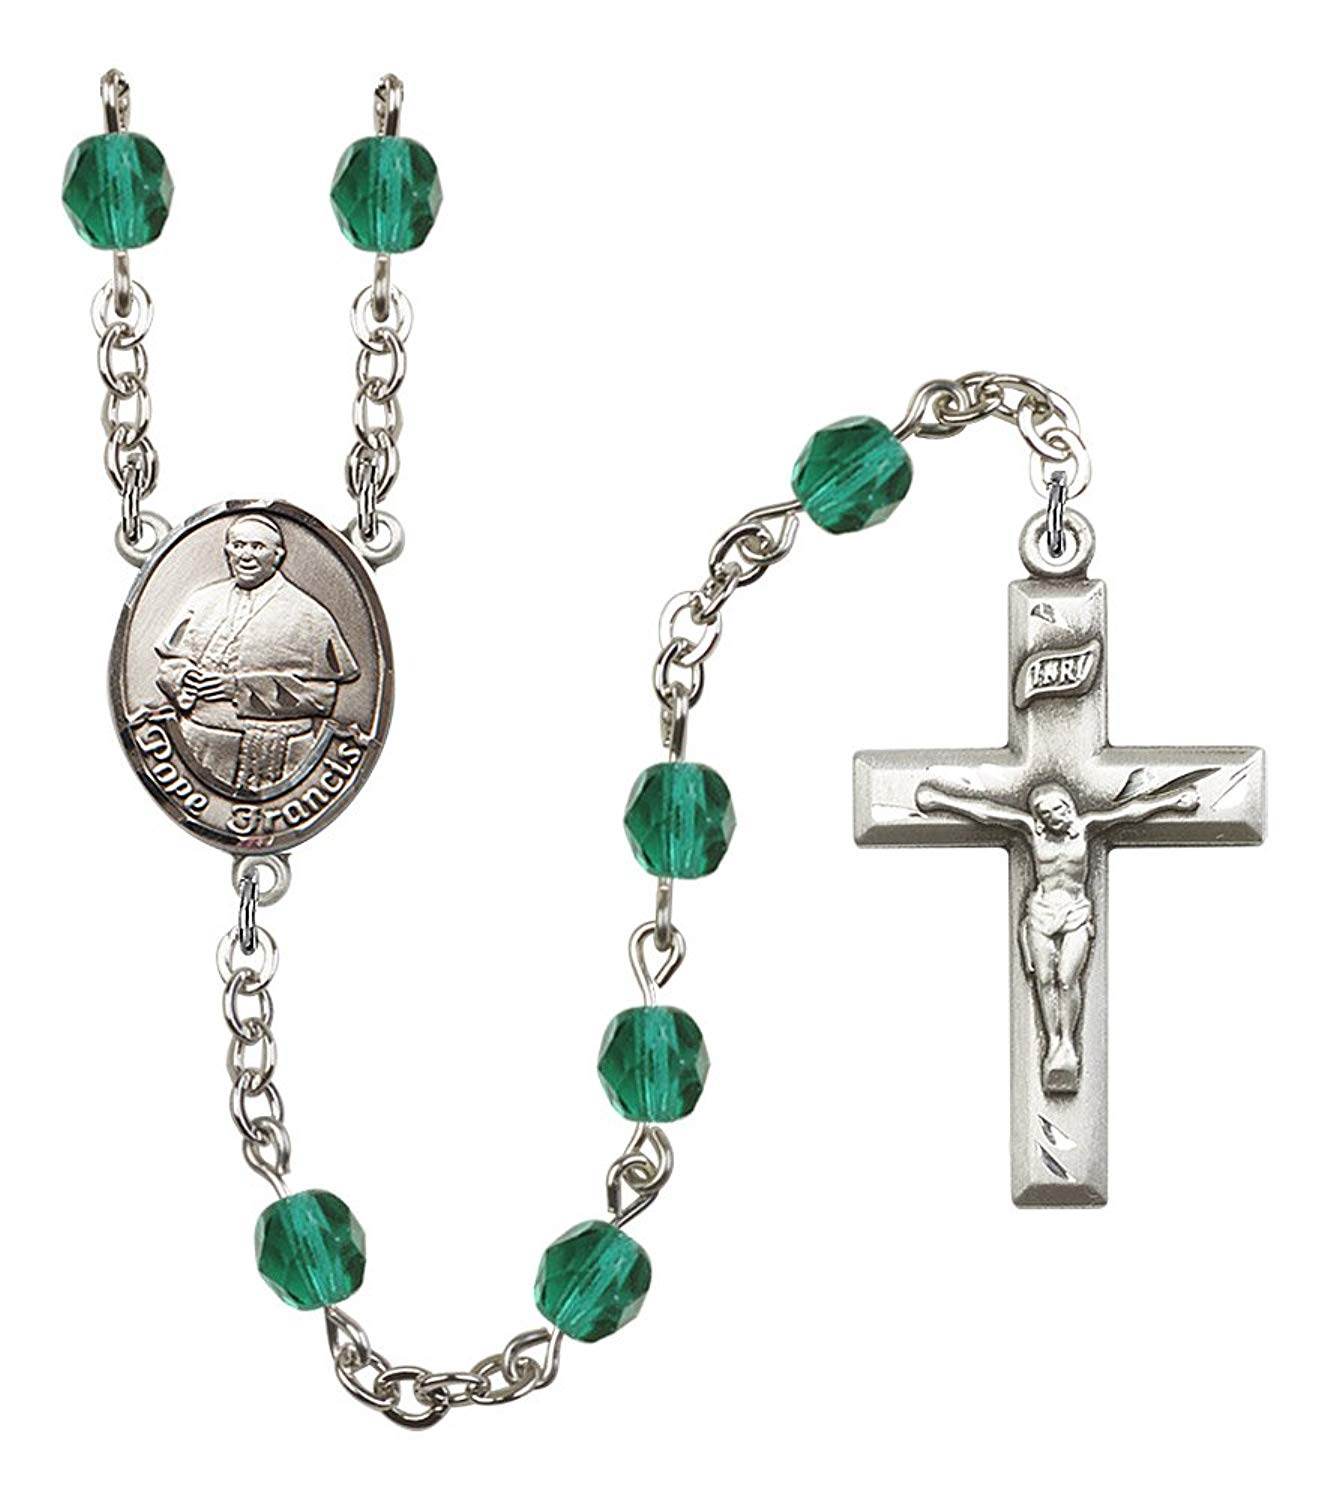 Silver Finish Pope Francis Rosary with 6mm Zircon Color Fire Polished Beads, Pope Francis Center, and 1 3/8 x 3/4 inch Crucifix, Gift Boxed